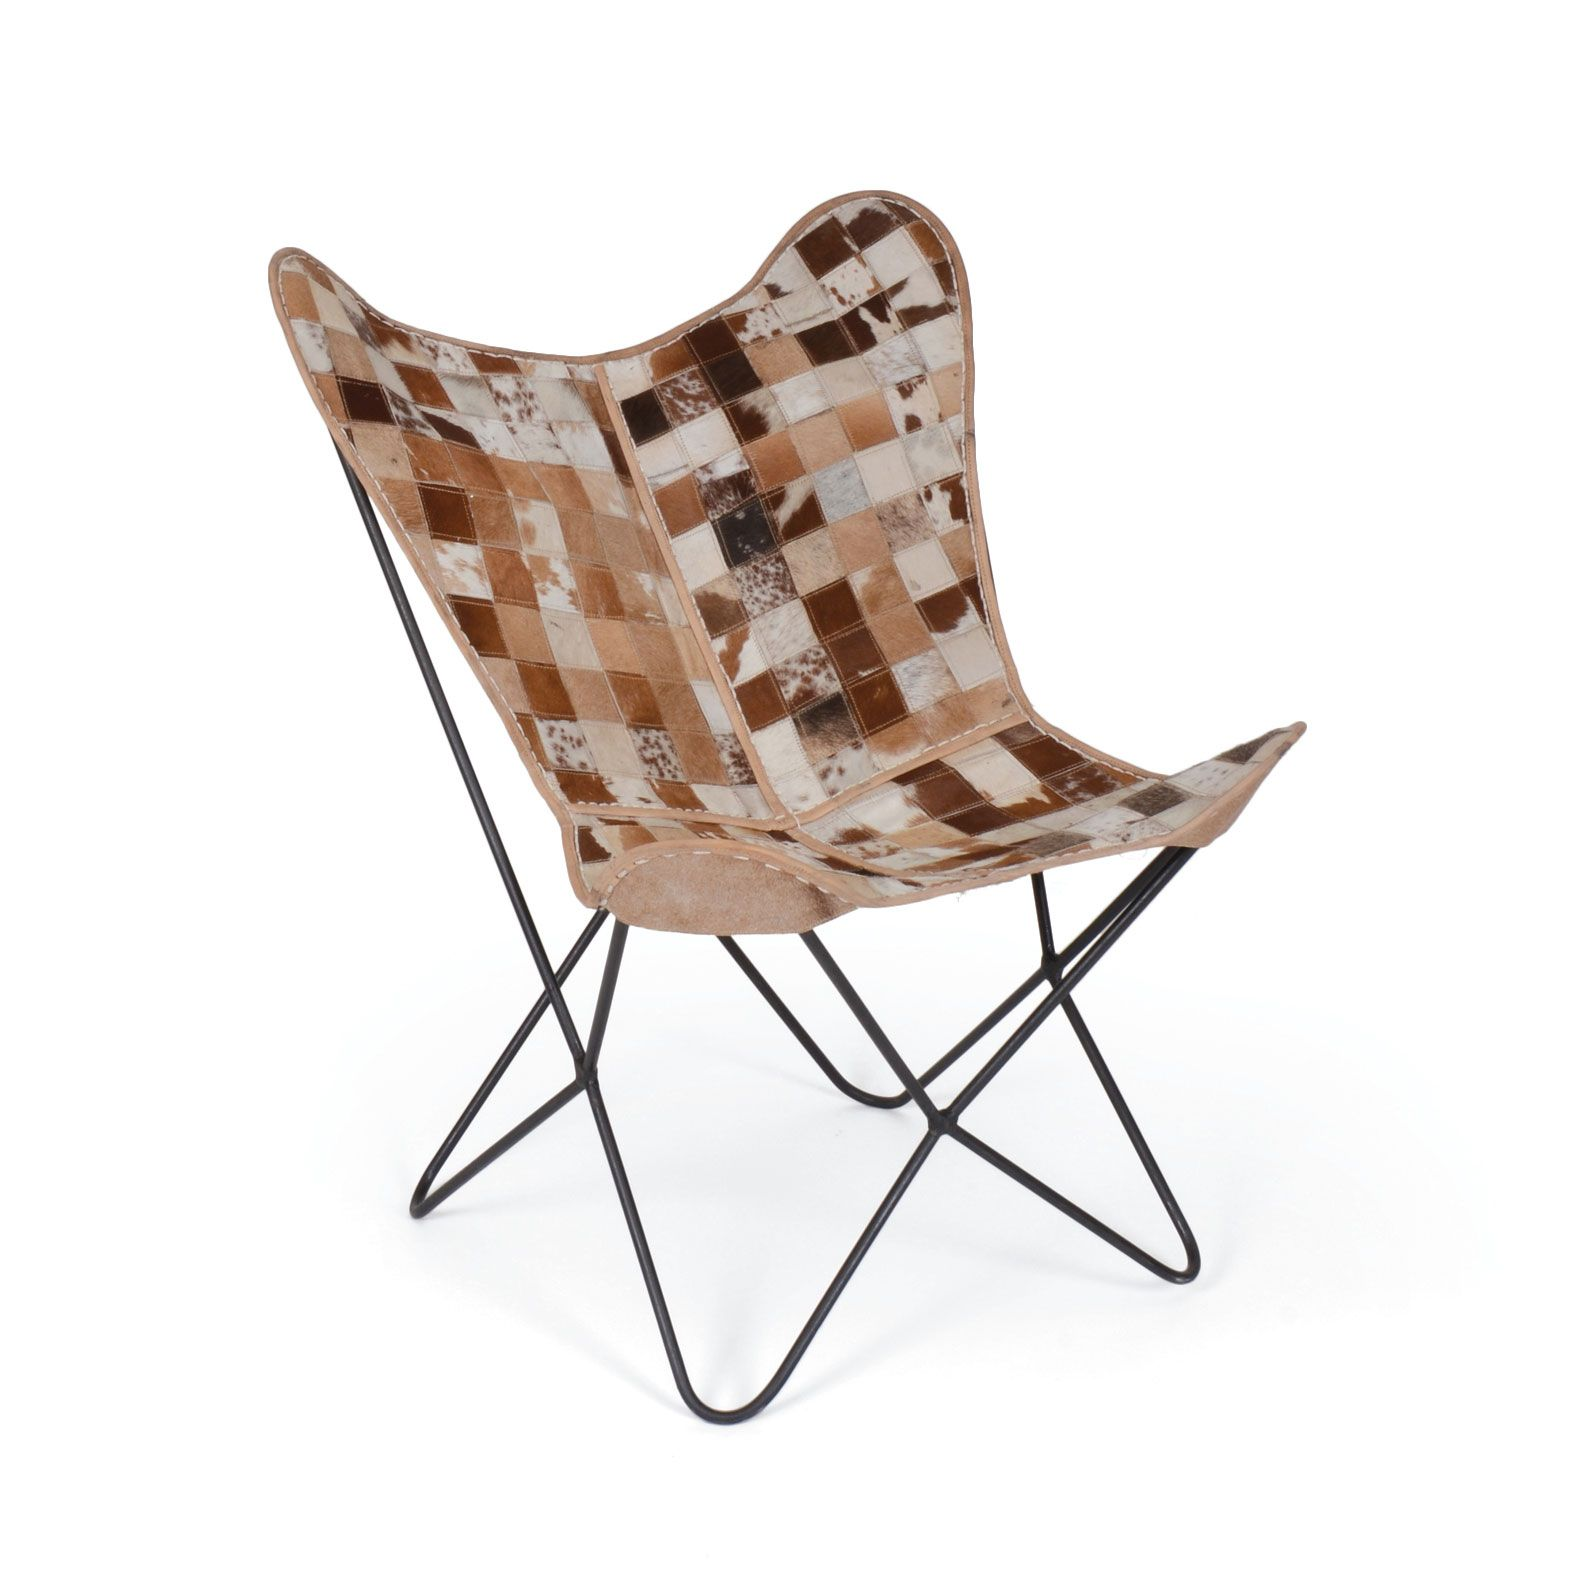 Furniture and Décor for the Modern Lifestyle Ikea chair